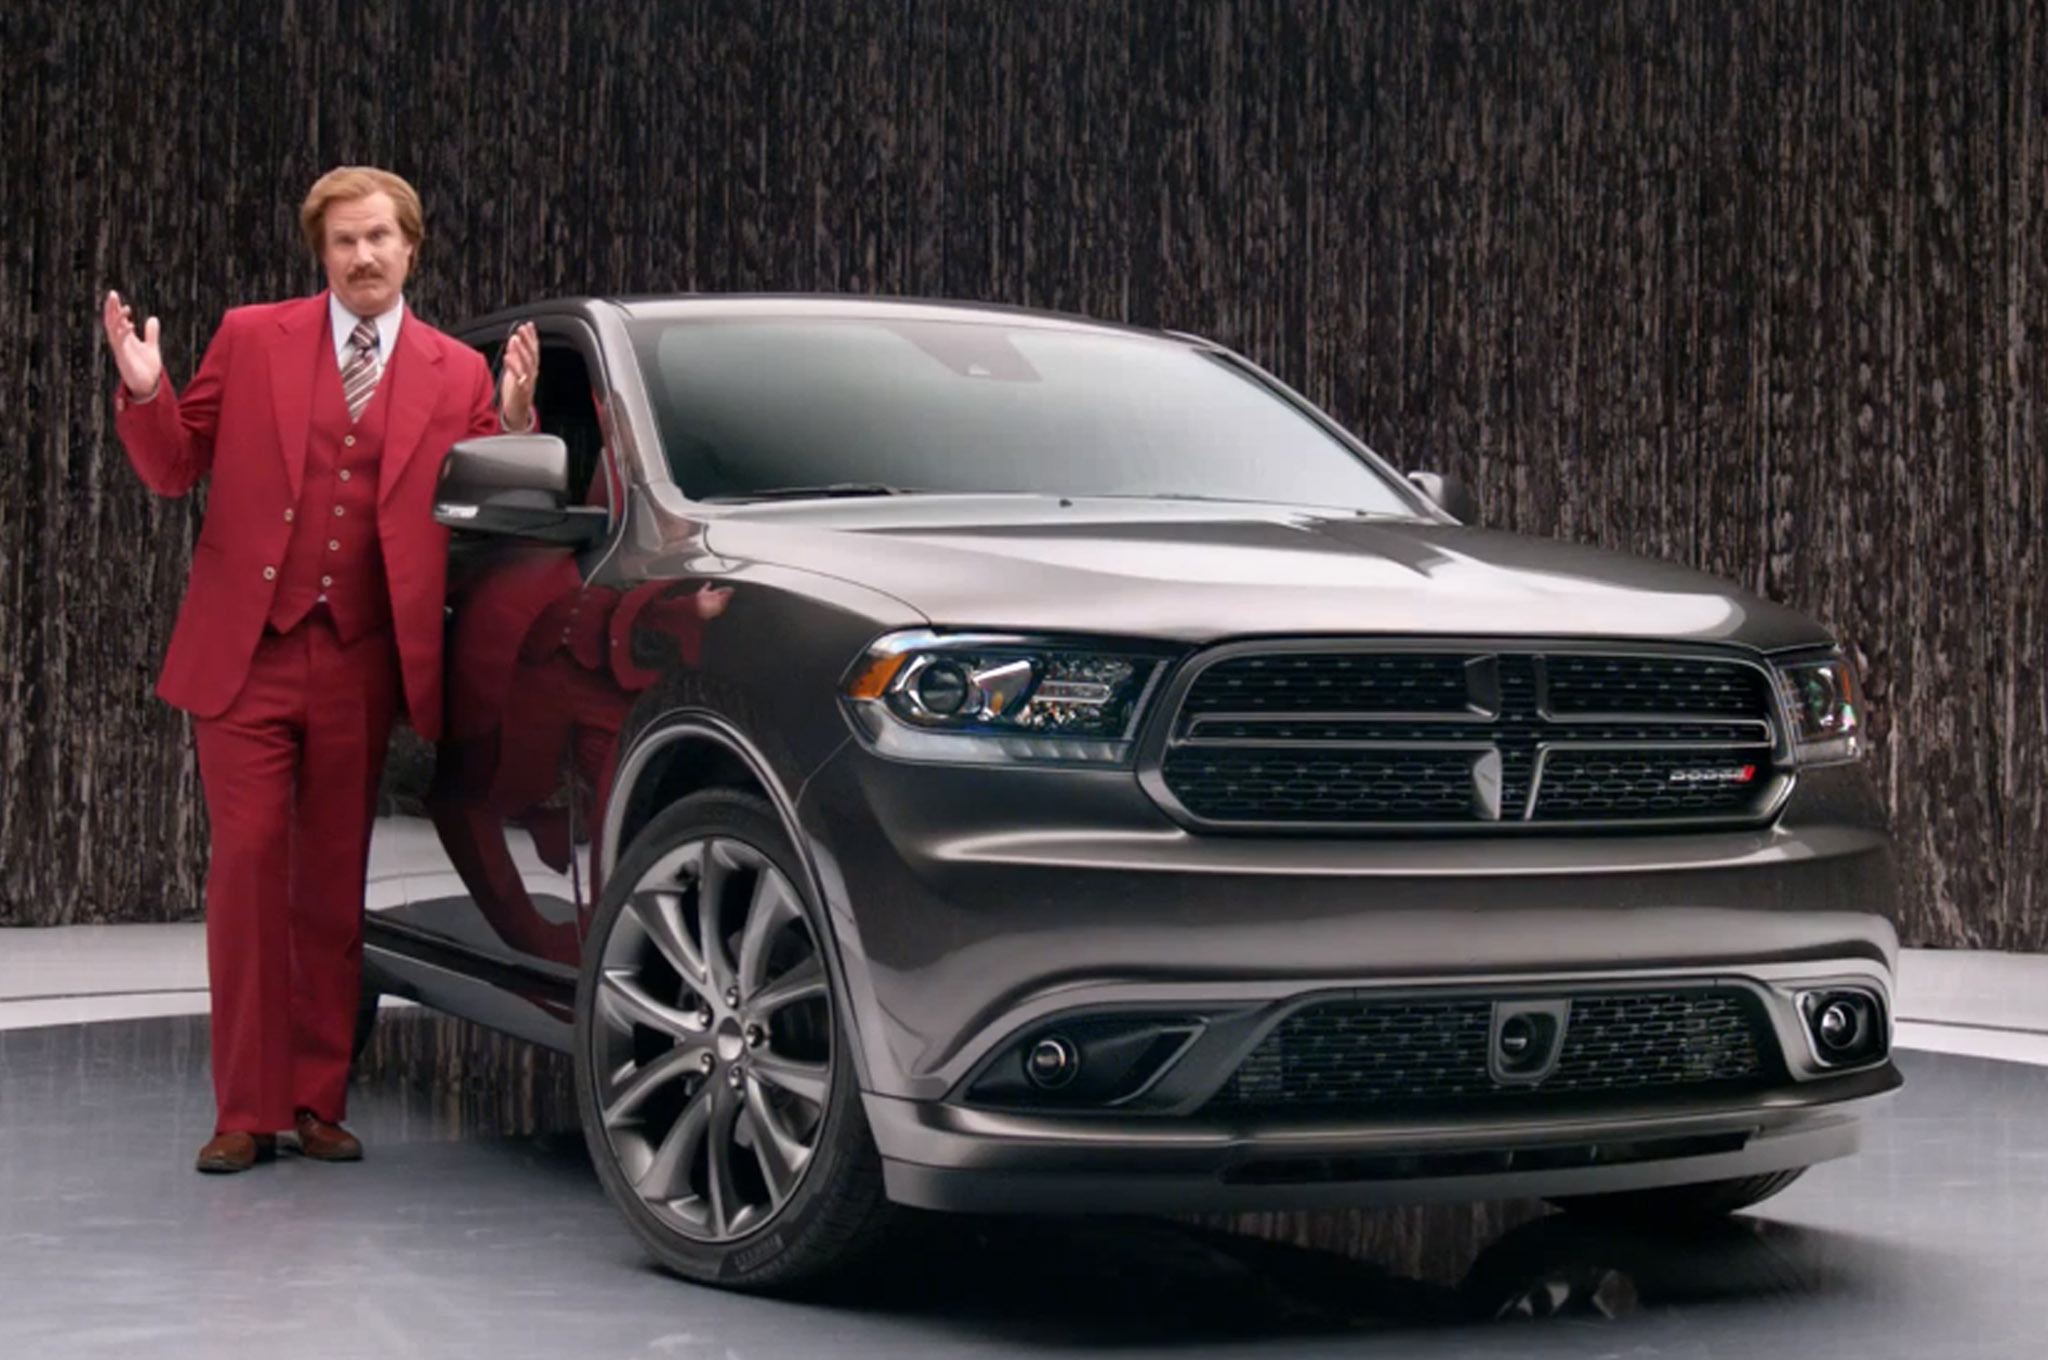 2014 Dodge Durango Ron Burgundy 2014 Auto Ad Awards